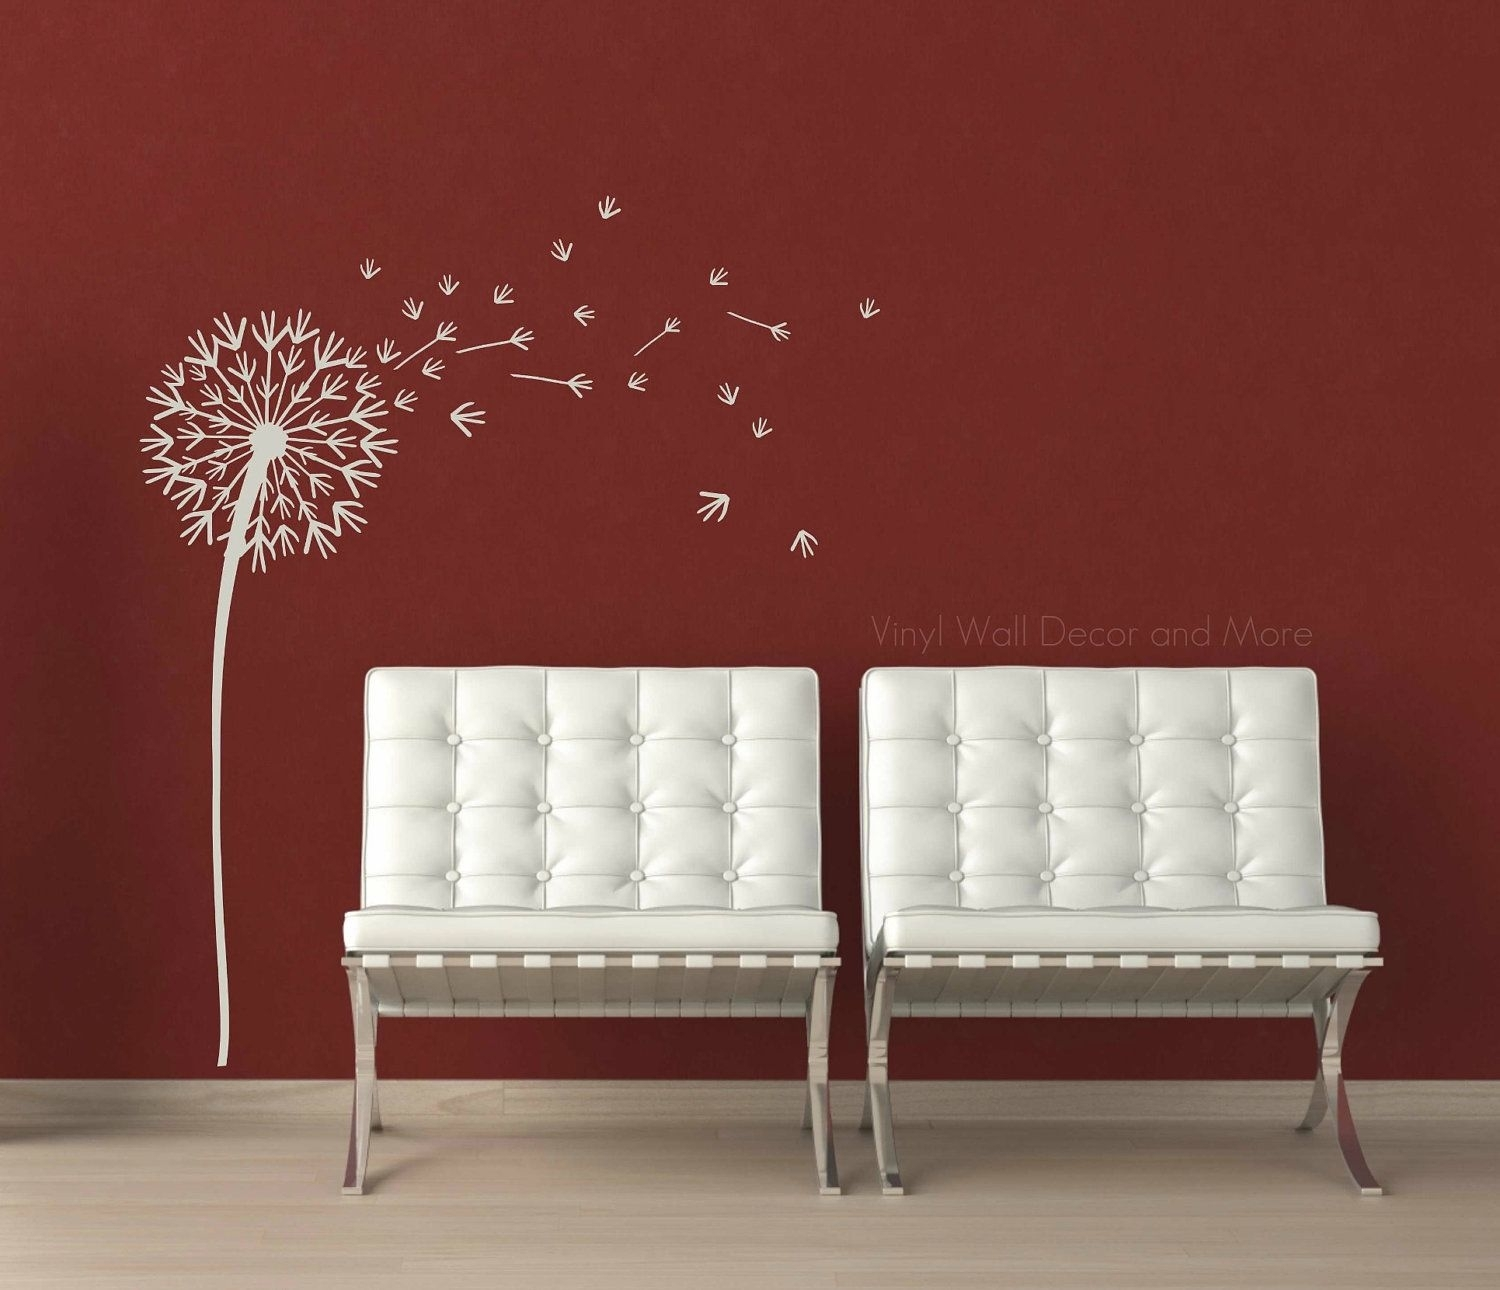 Dandelion Wall Decal | Pinterest | Dandelion Wall Decal, Wall Decals in Dandelion Wall Art (Image 13 of 20)